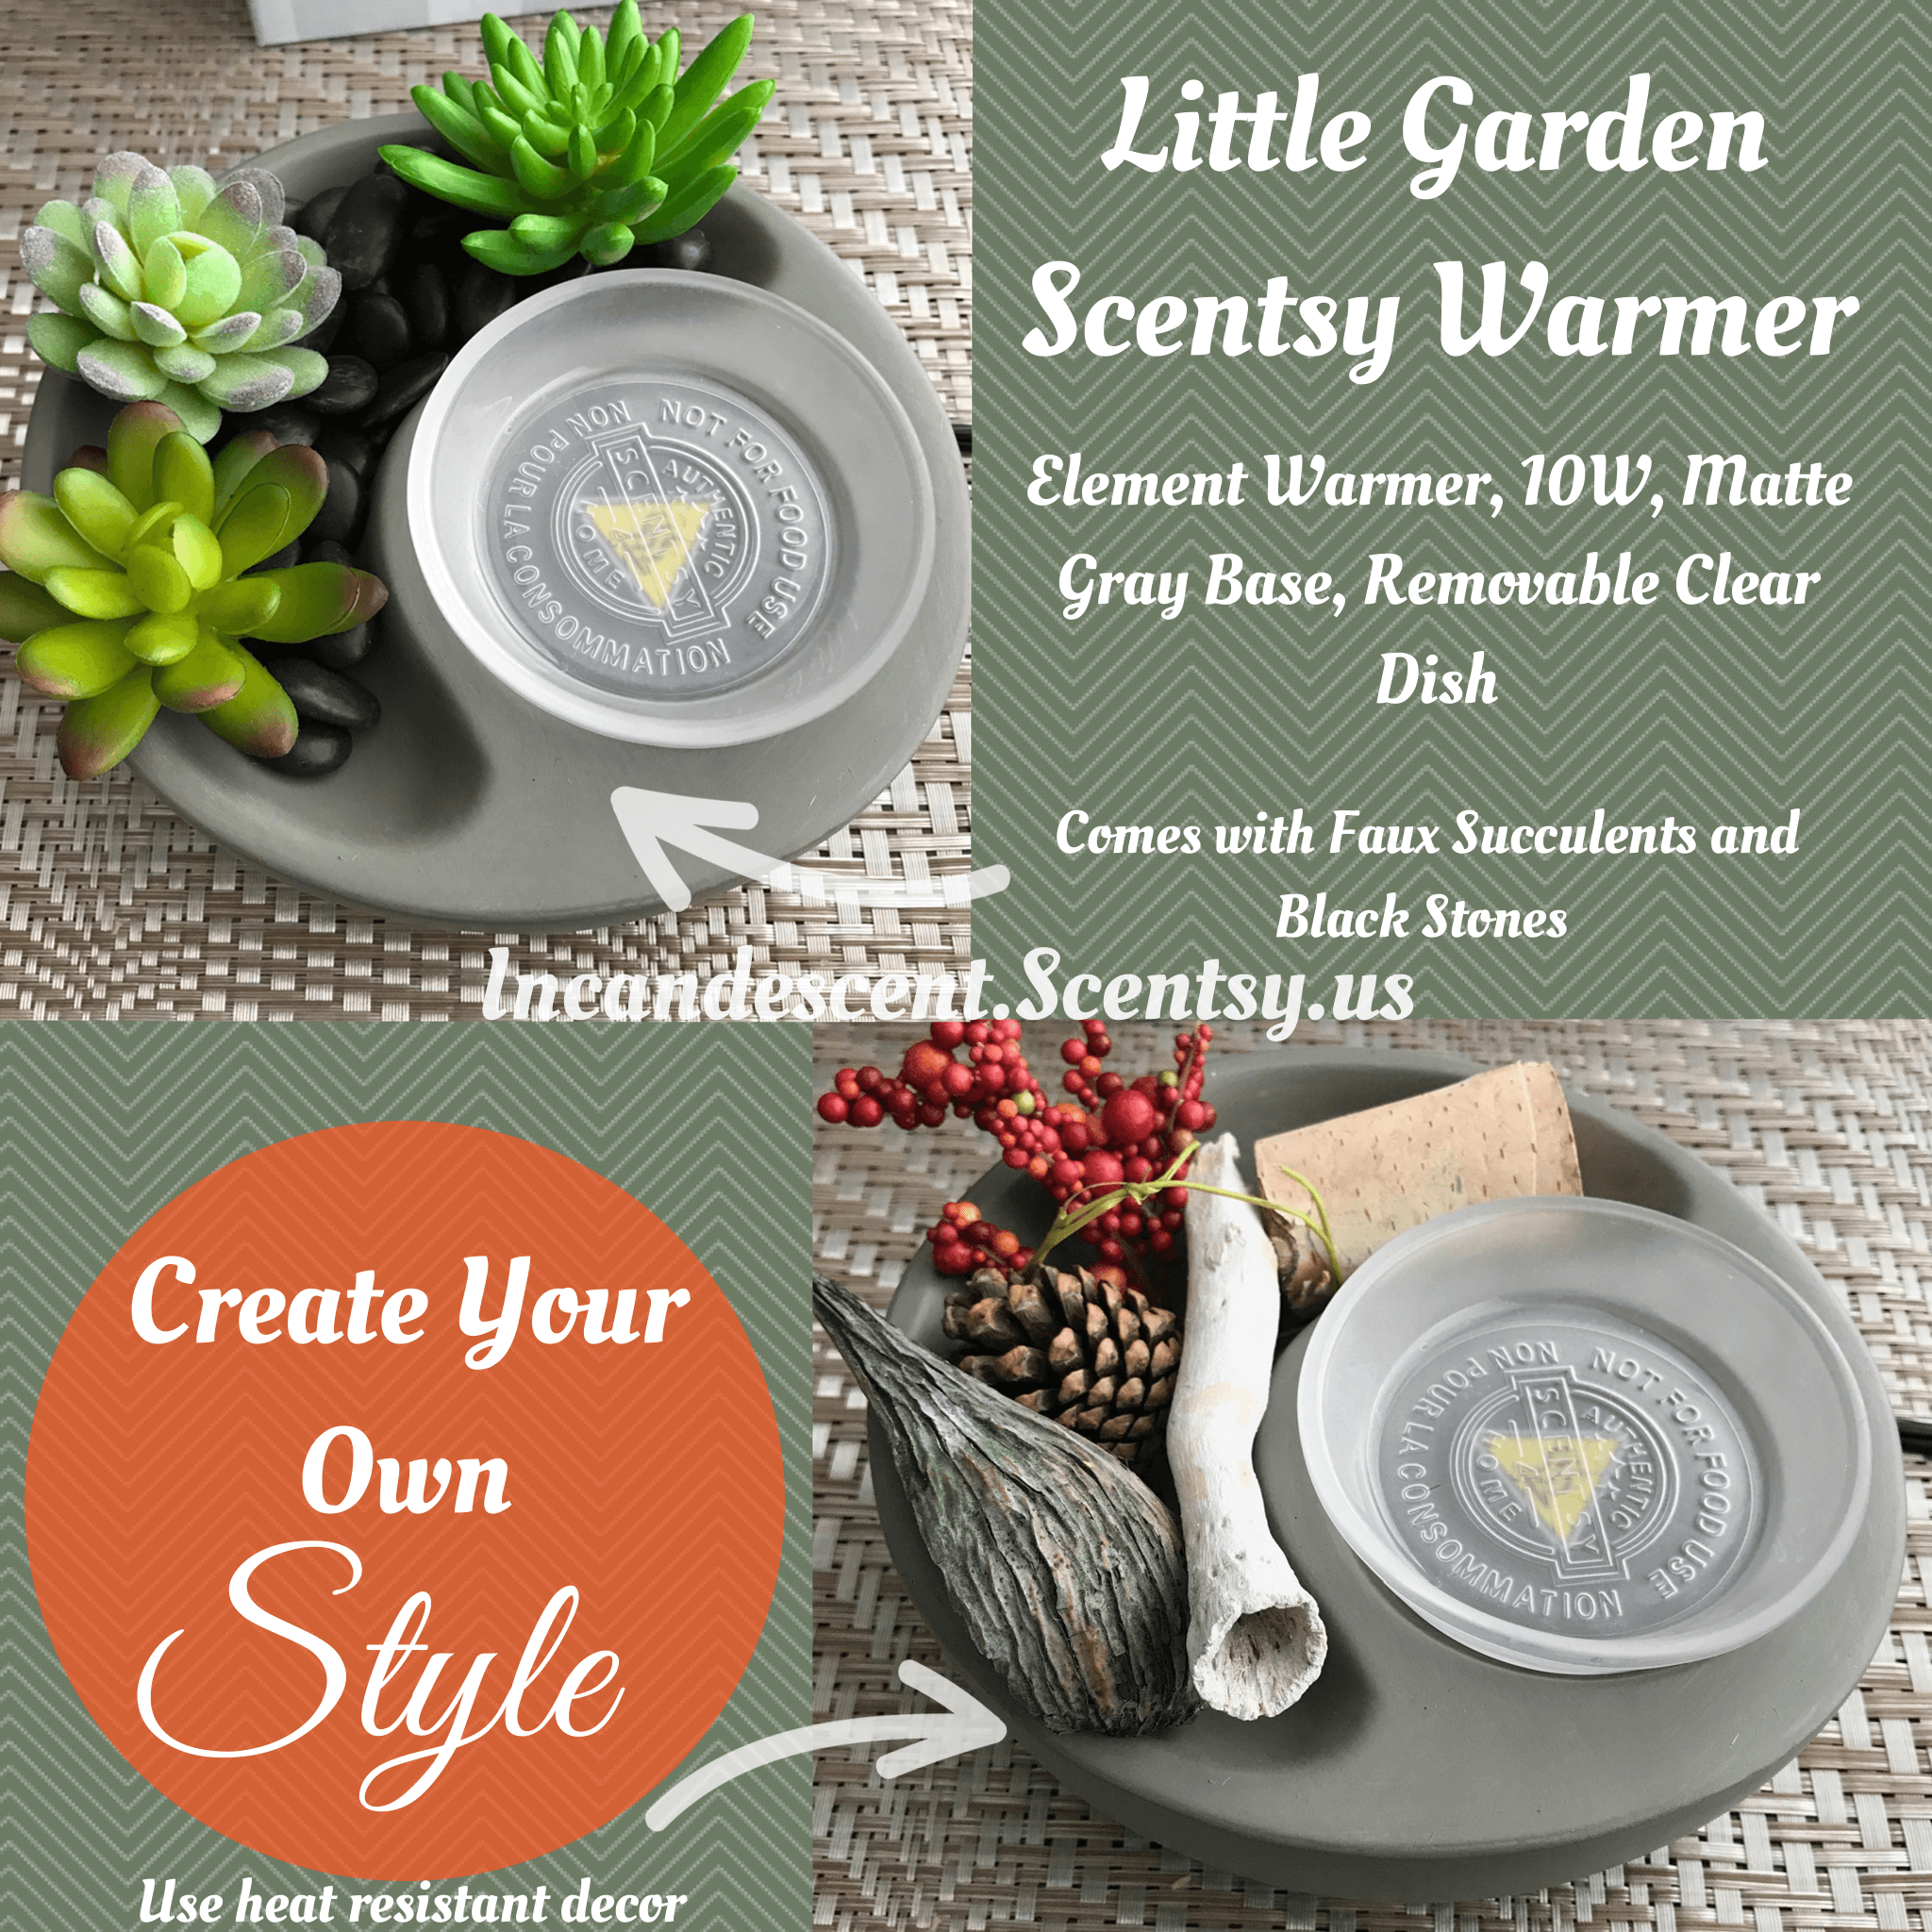 new little garden scentsy warmer scentsy buy online scentsy warmers and scents